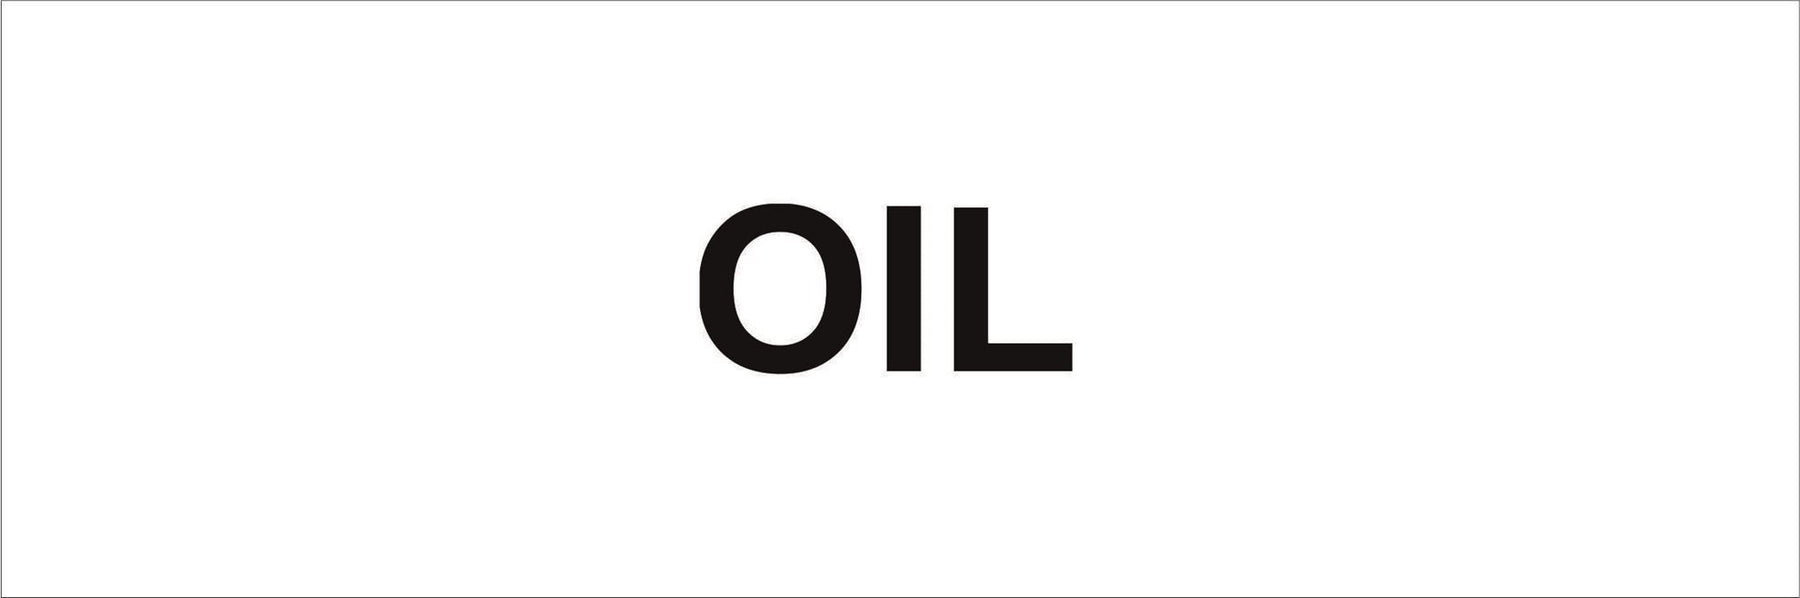 Pipeline Marking Label - OIL